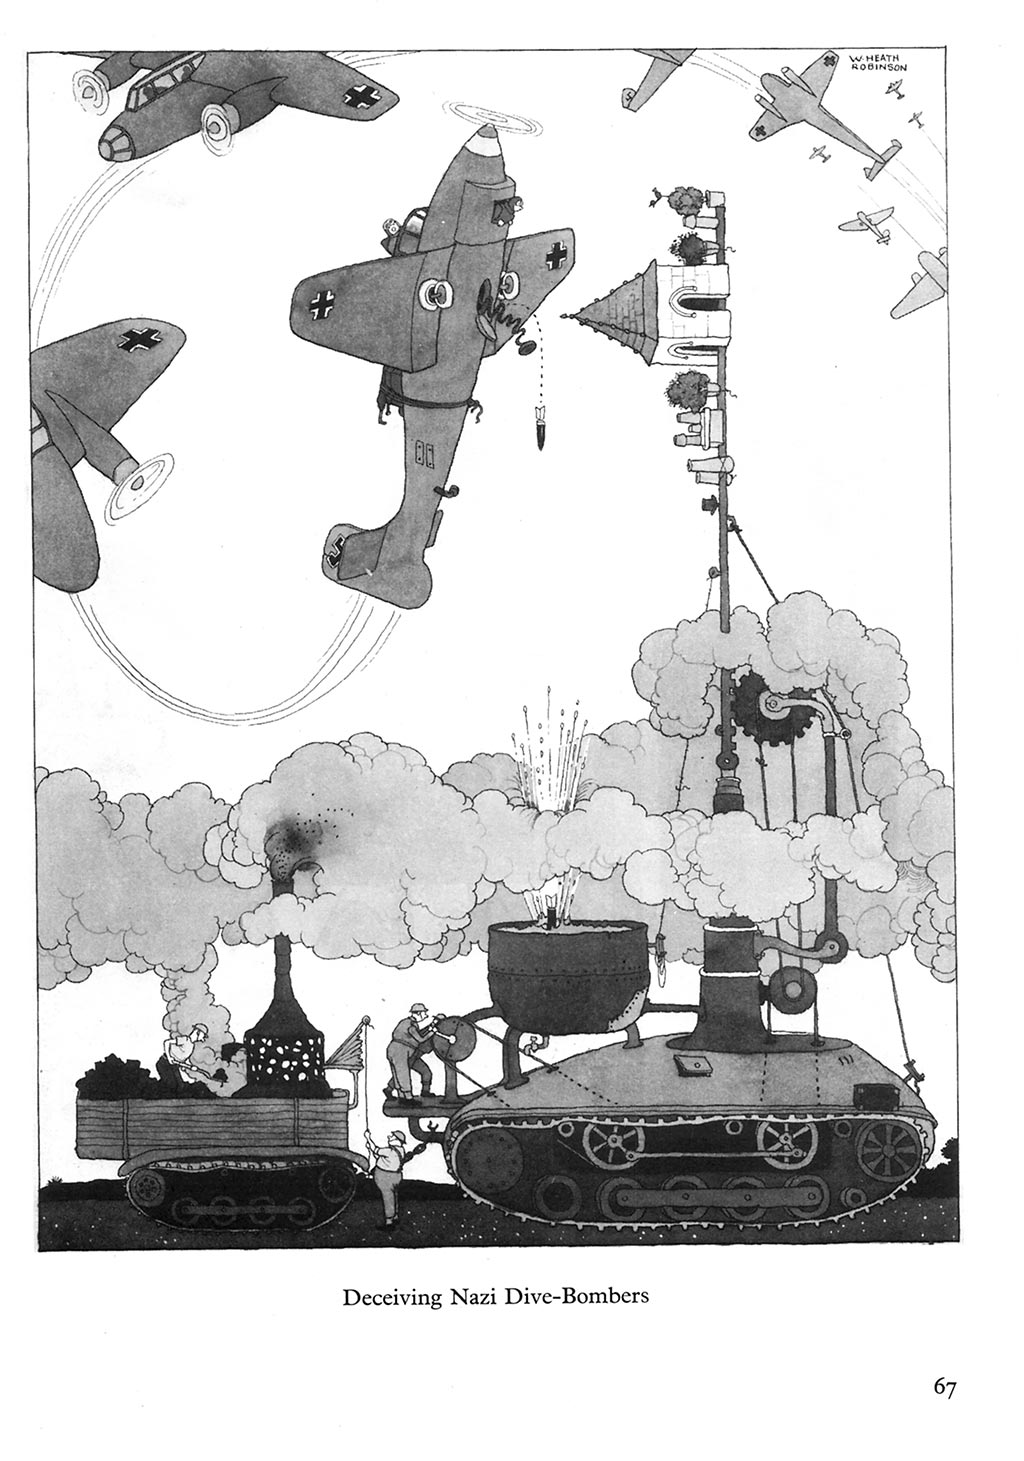 william_heath_robinson_inventions_-_page_067